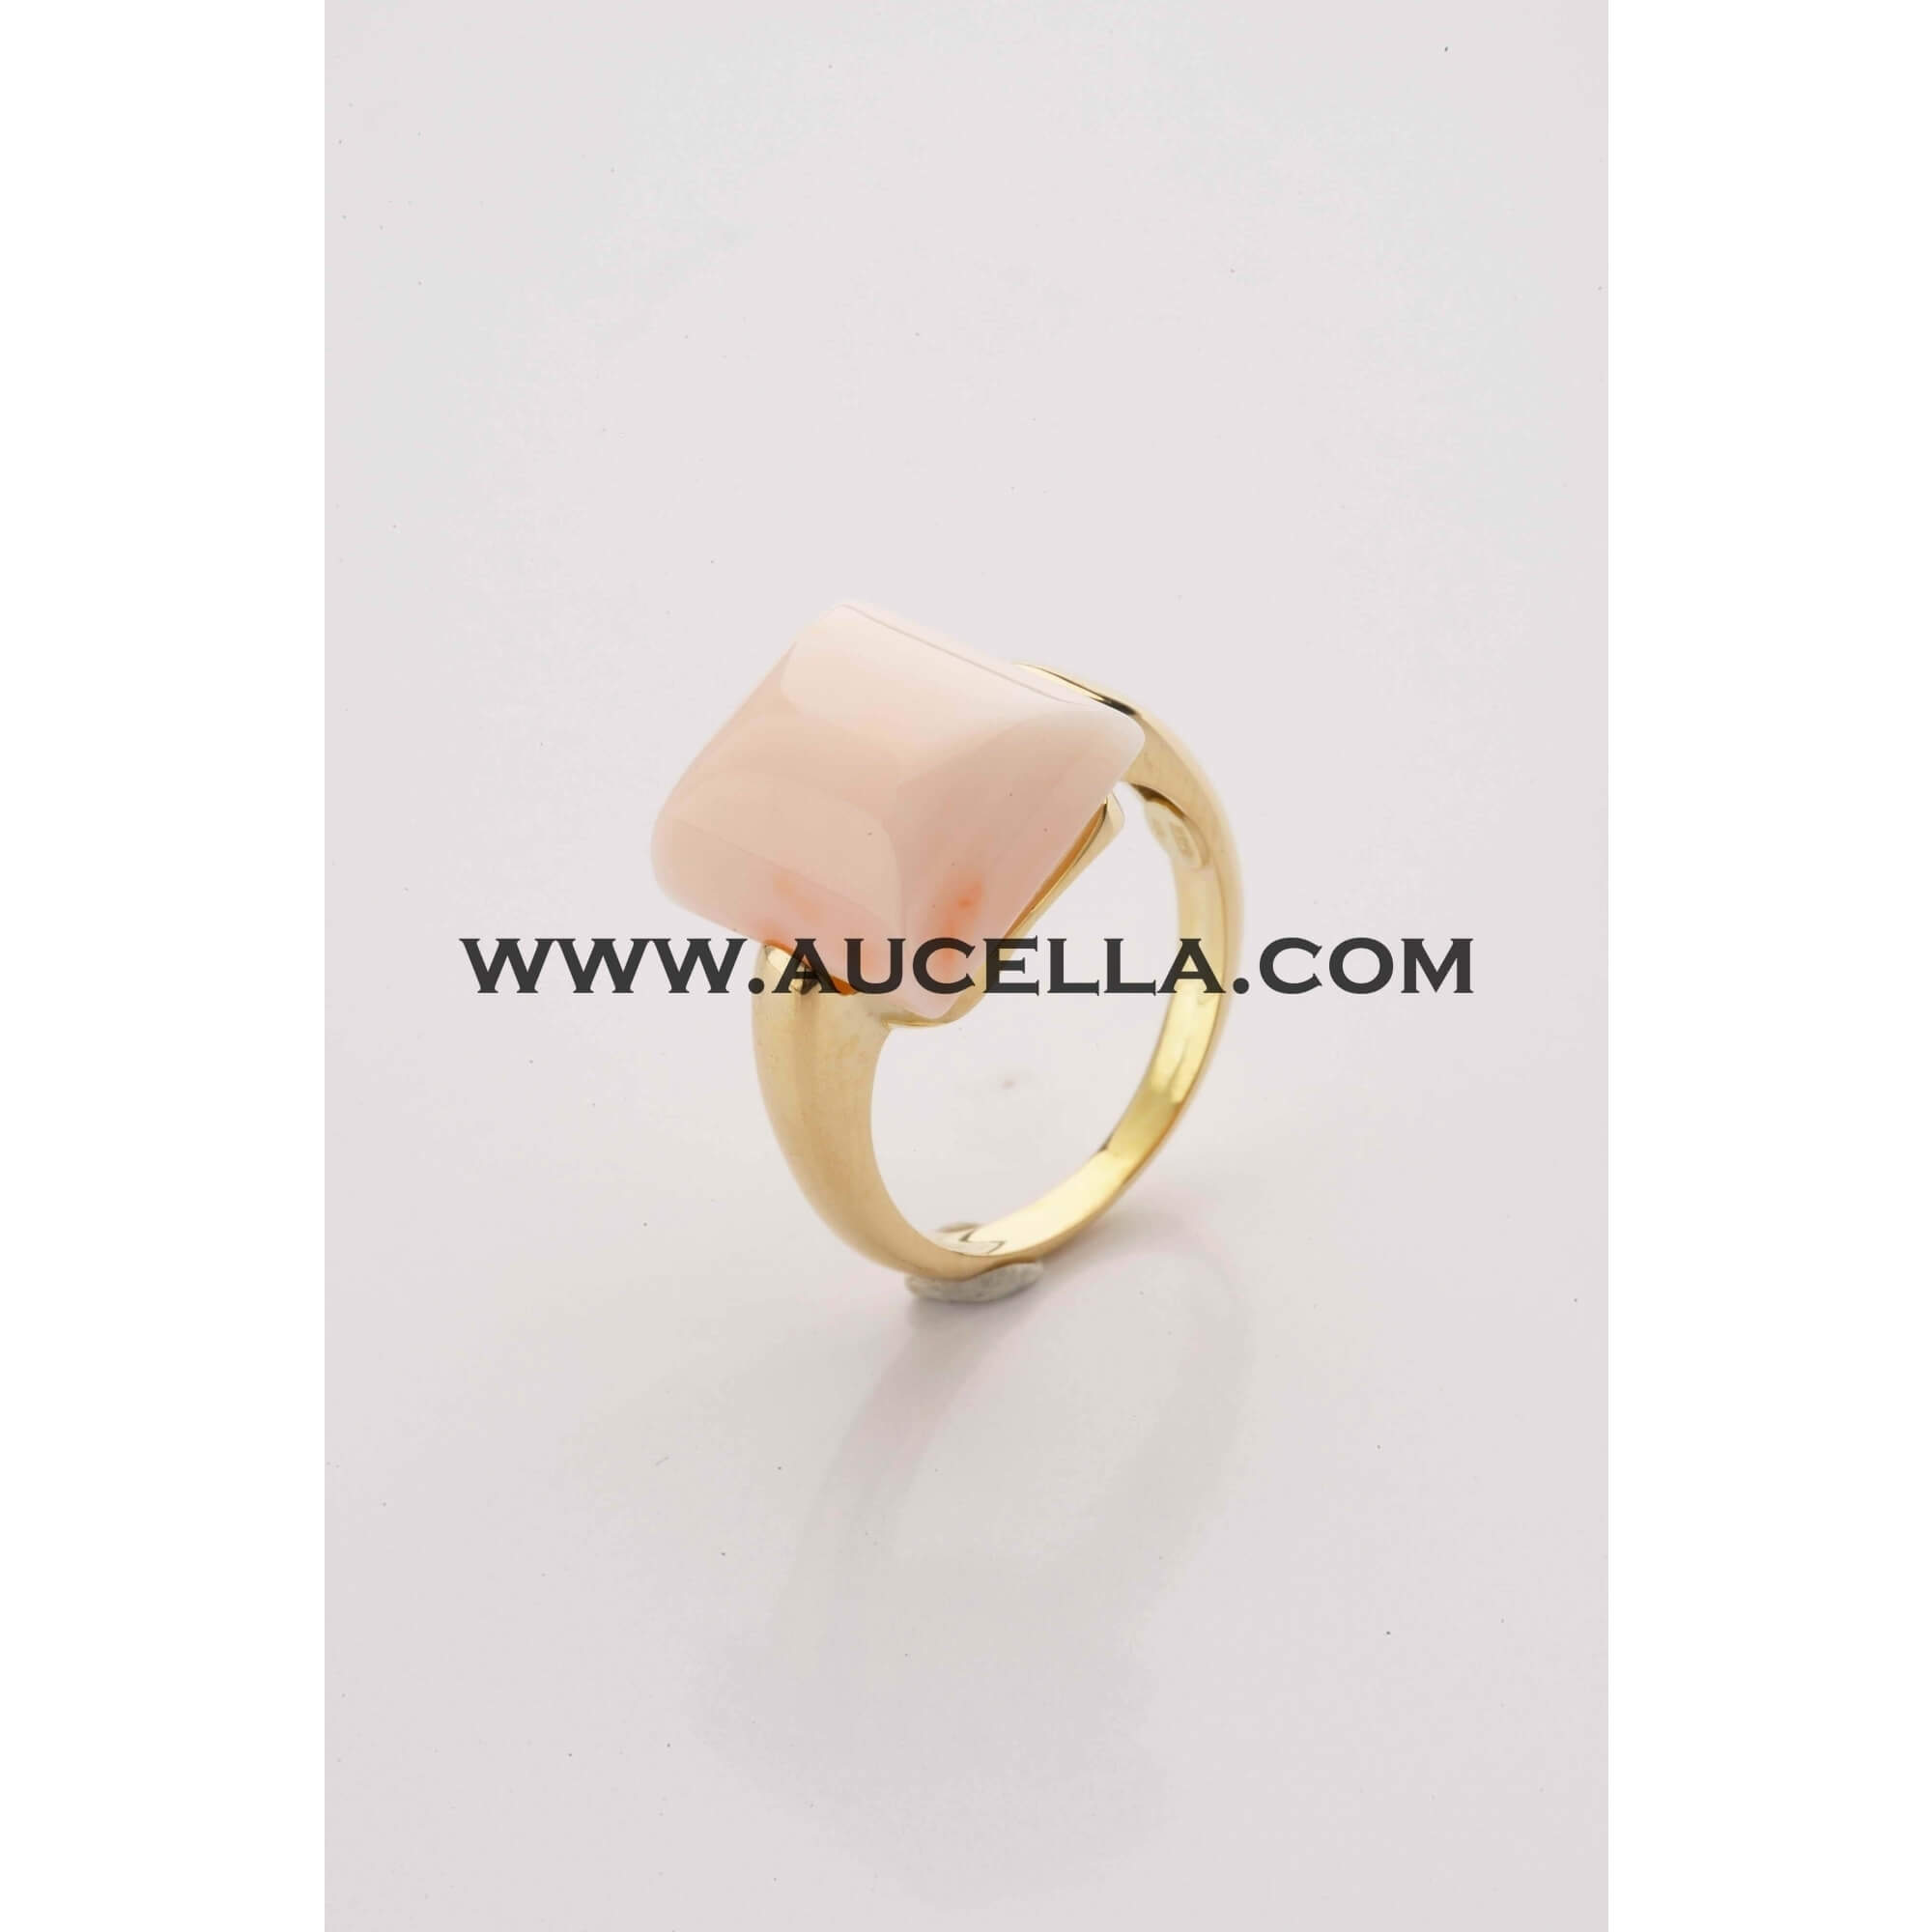 Ring set in gold with natural coral square cabochon